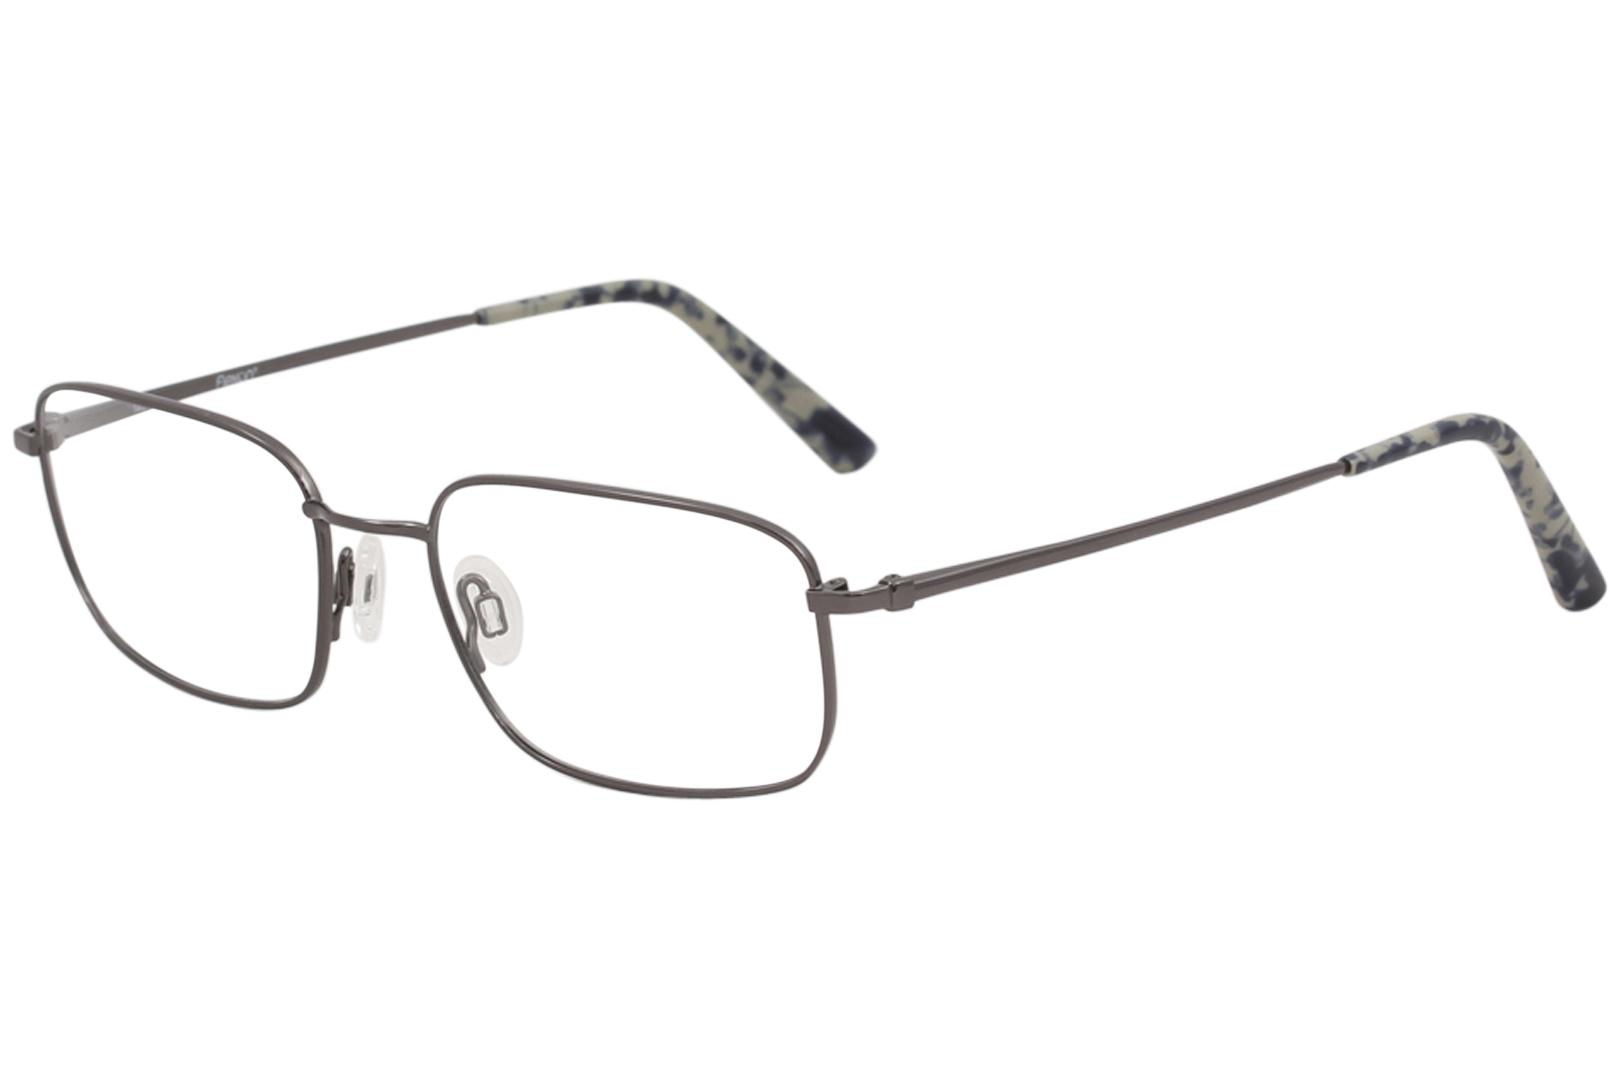 Image of Flexon Men's Benjamin 600 033 Gunmetal Titanium Optical Frame 54mm - Grey - Lens 54 Bridge 18 Temple 140mm